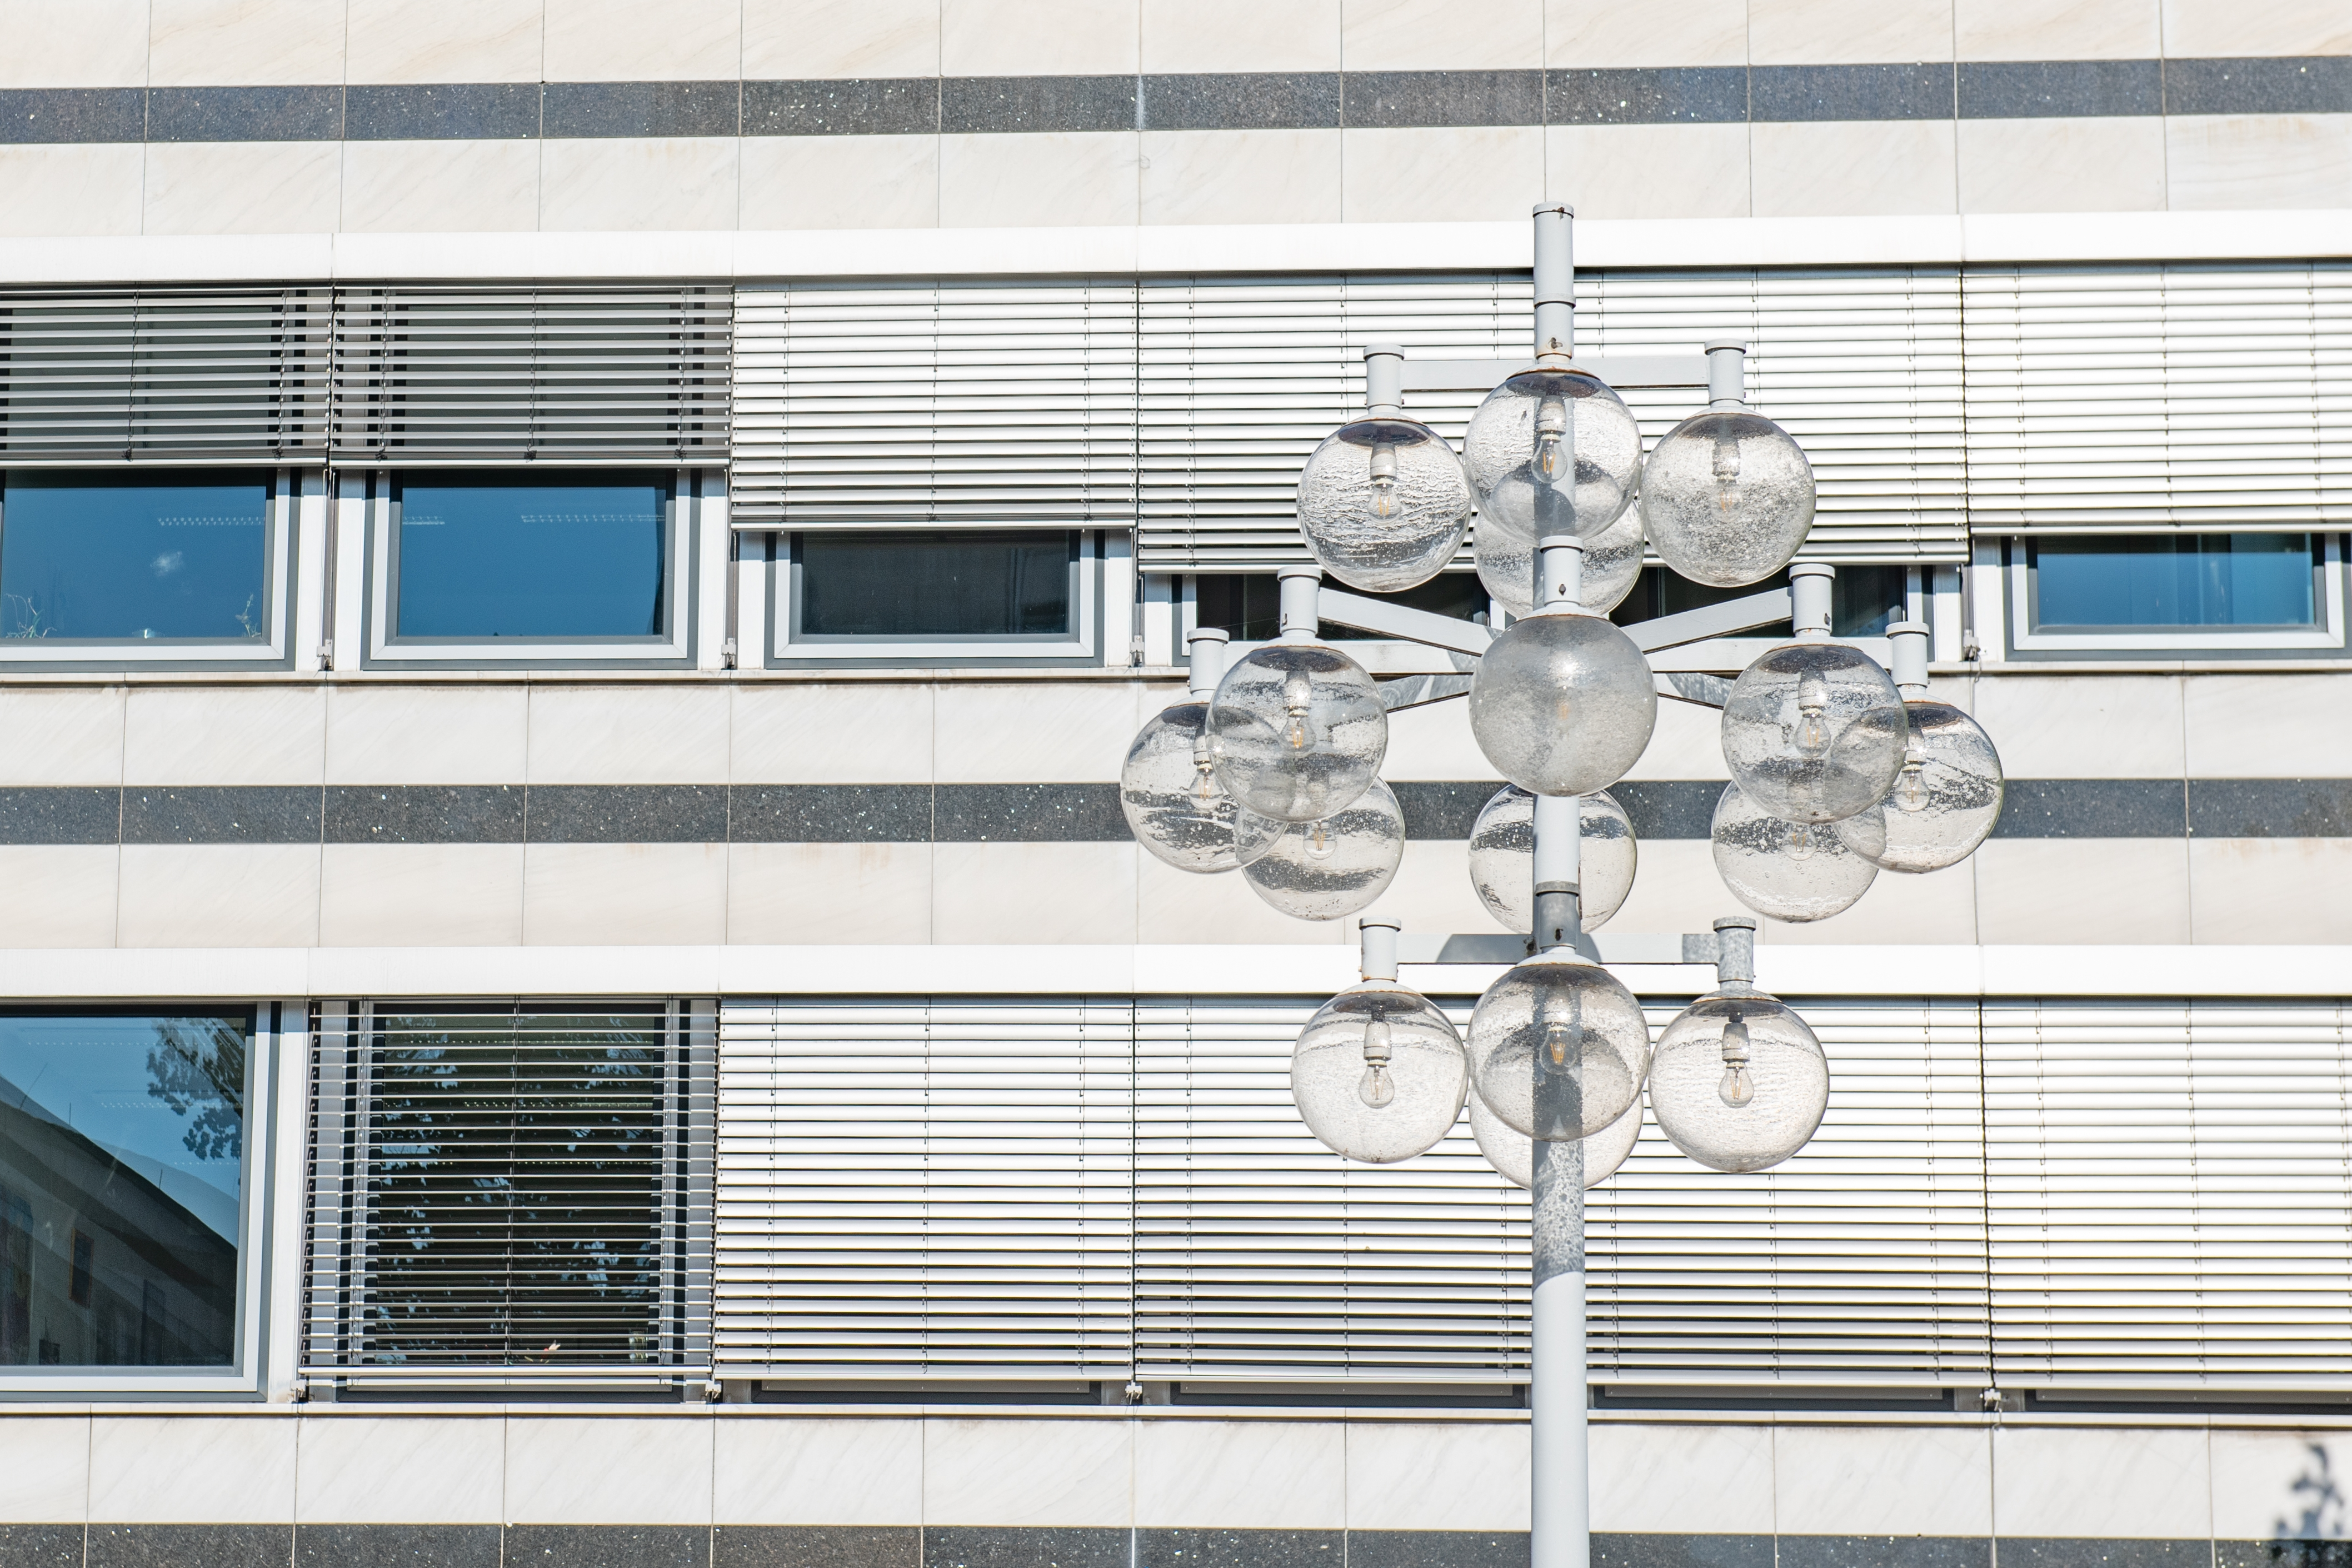 Office window with blinds, in front of it a striking street light with numerous round glass lights.